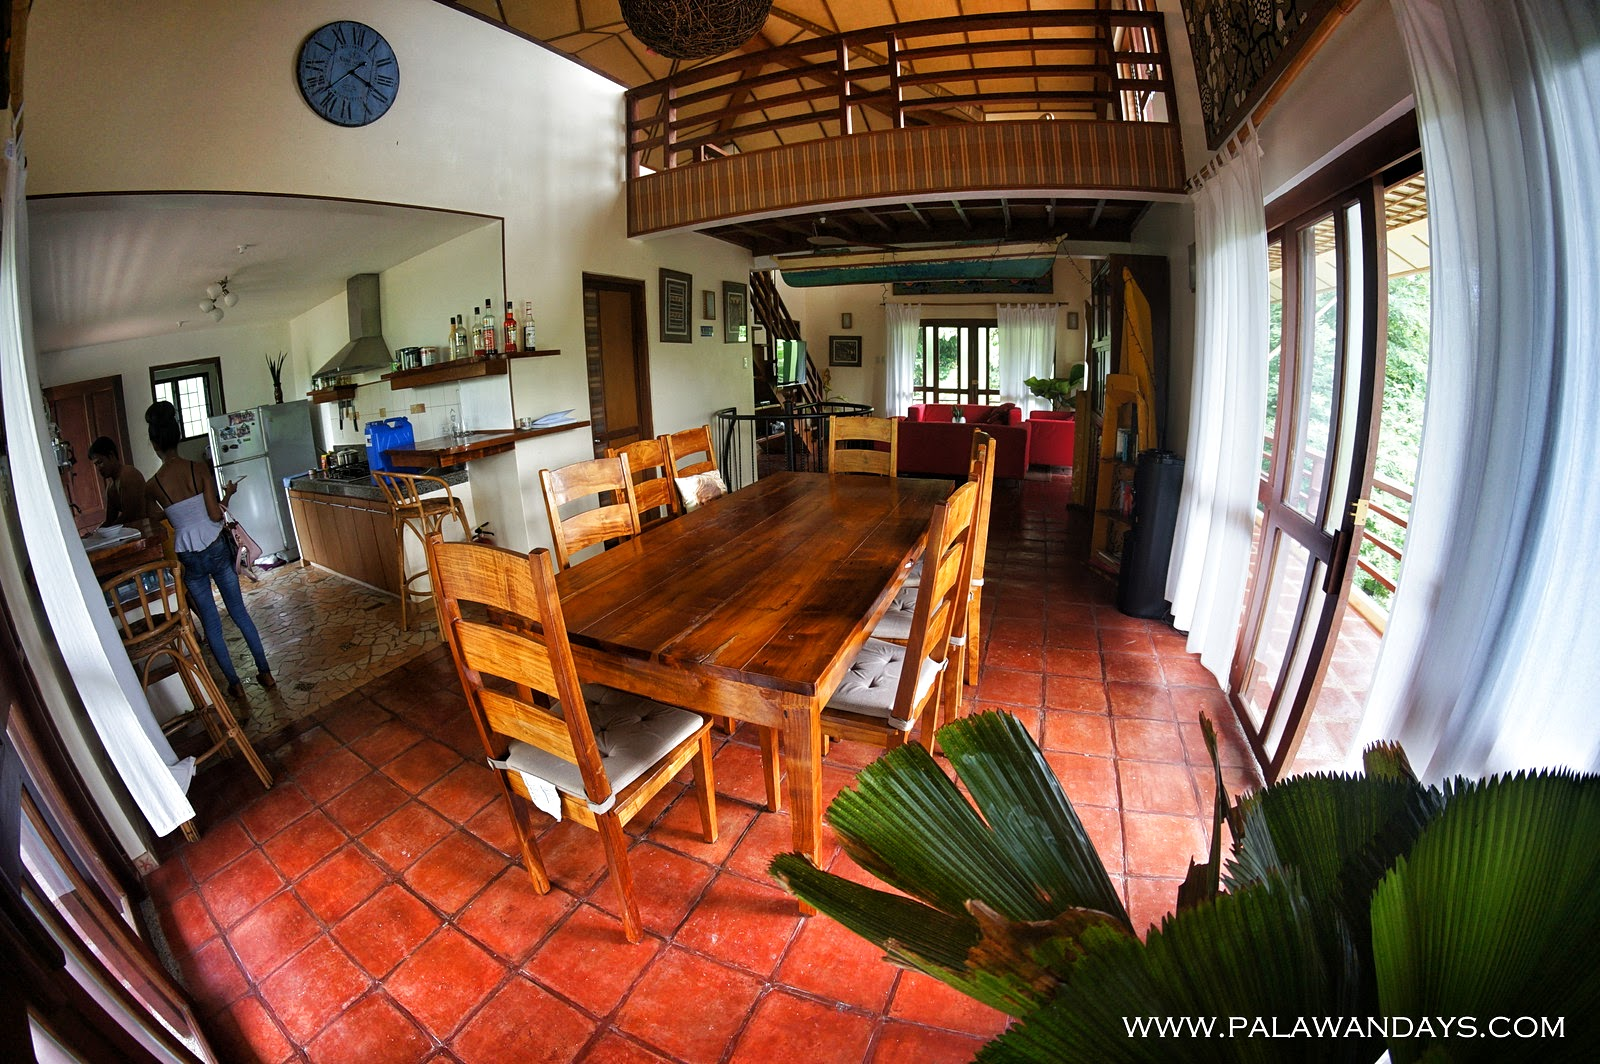 hous for rent, house for rent, palawan,